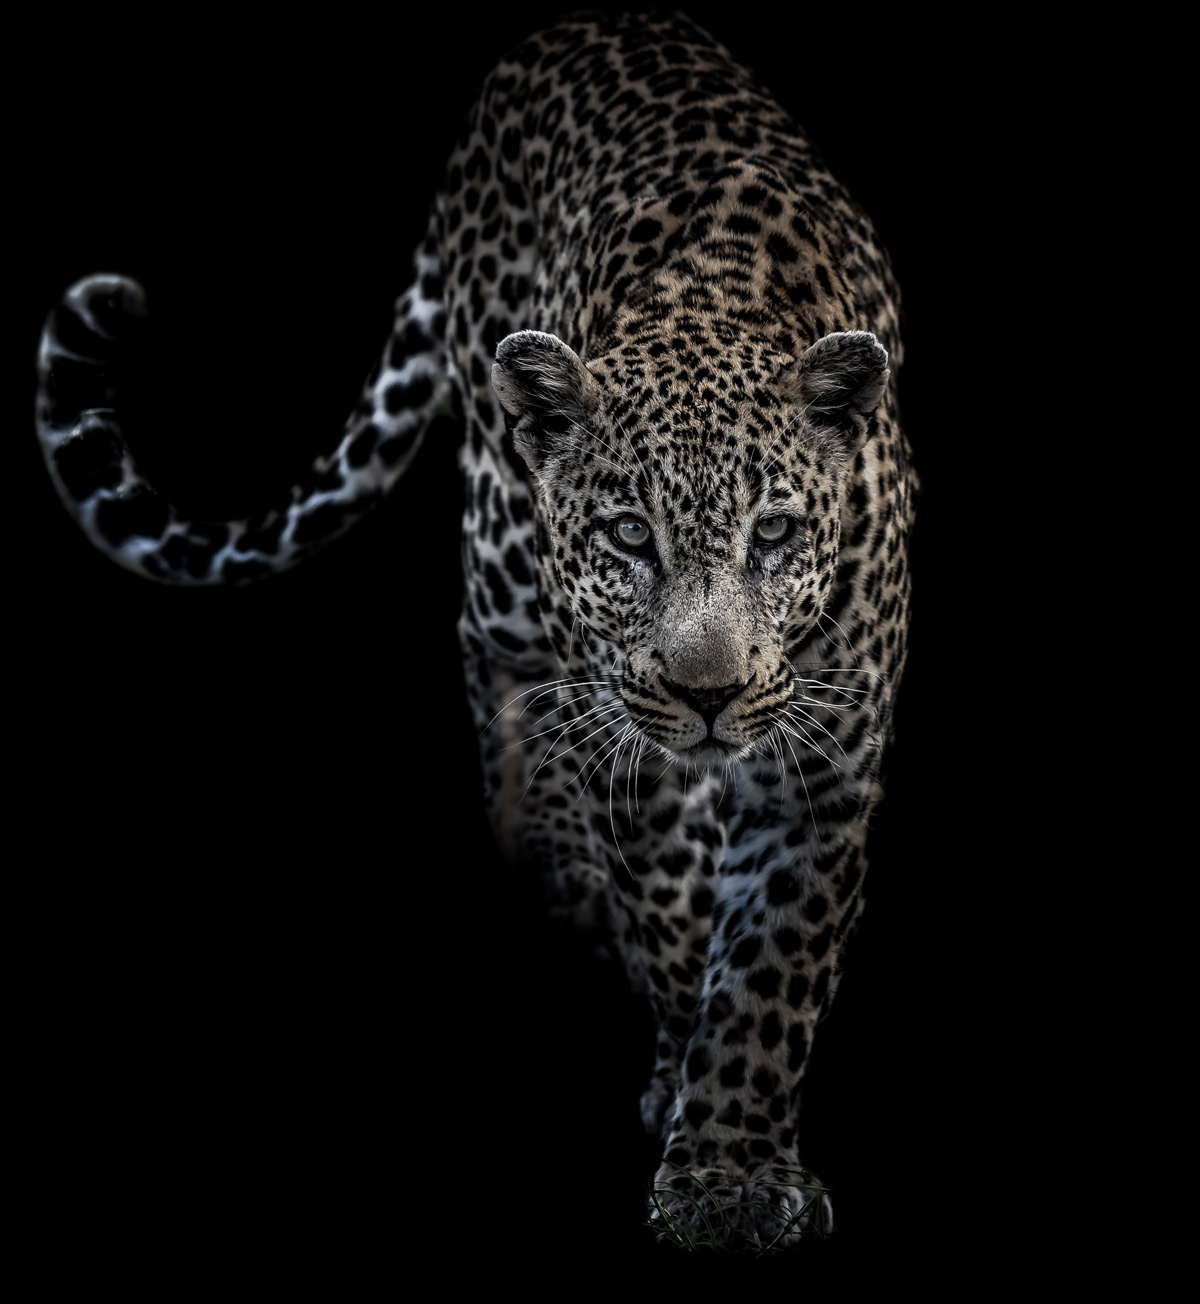 A dominant male leopard approaches in Sabi Sands Private Game Reserve, South Africa © Saul Rivkind